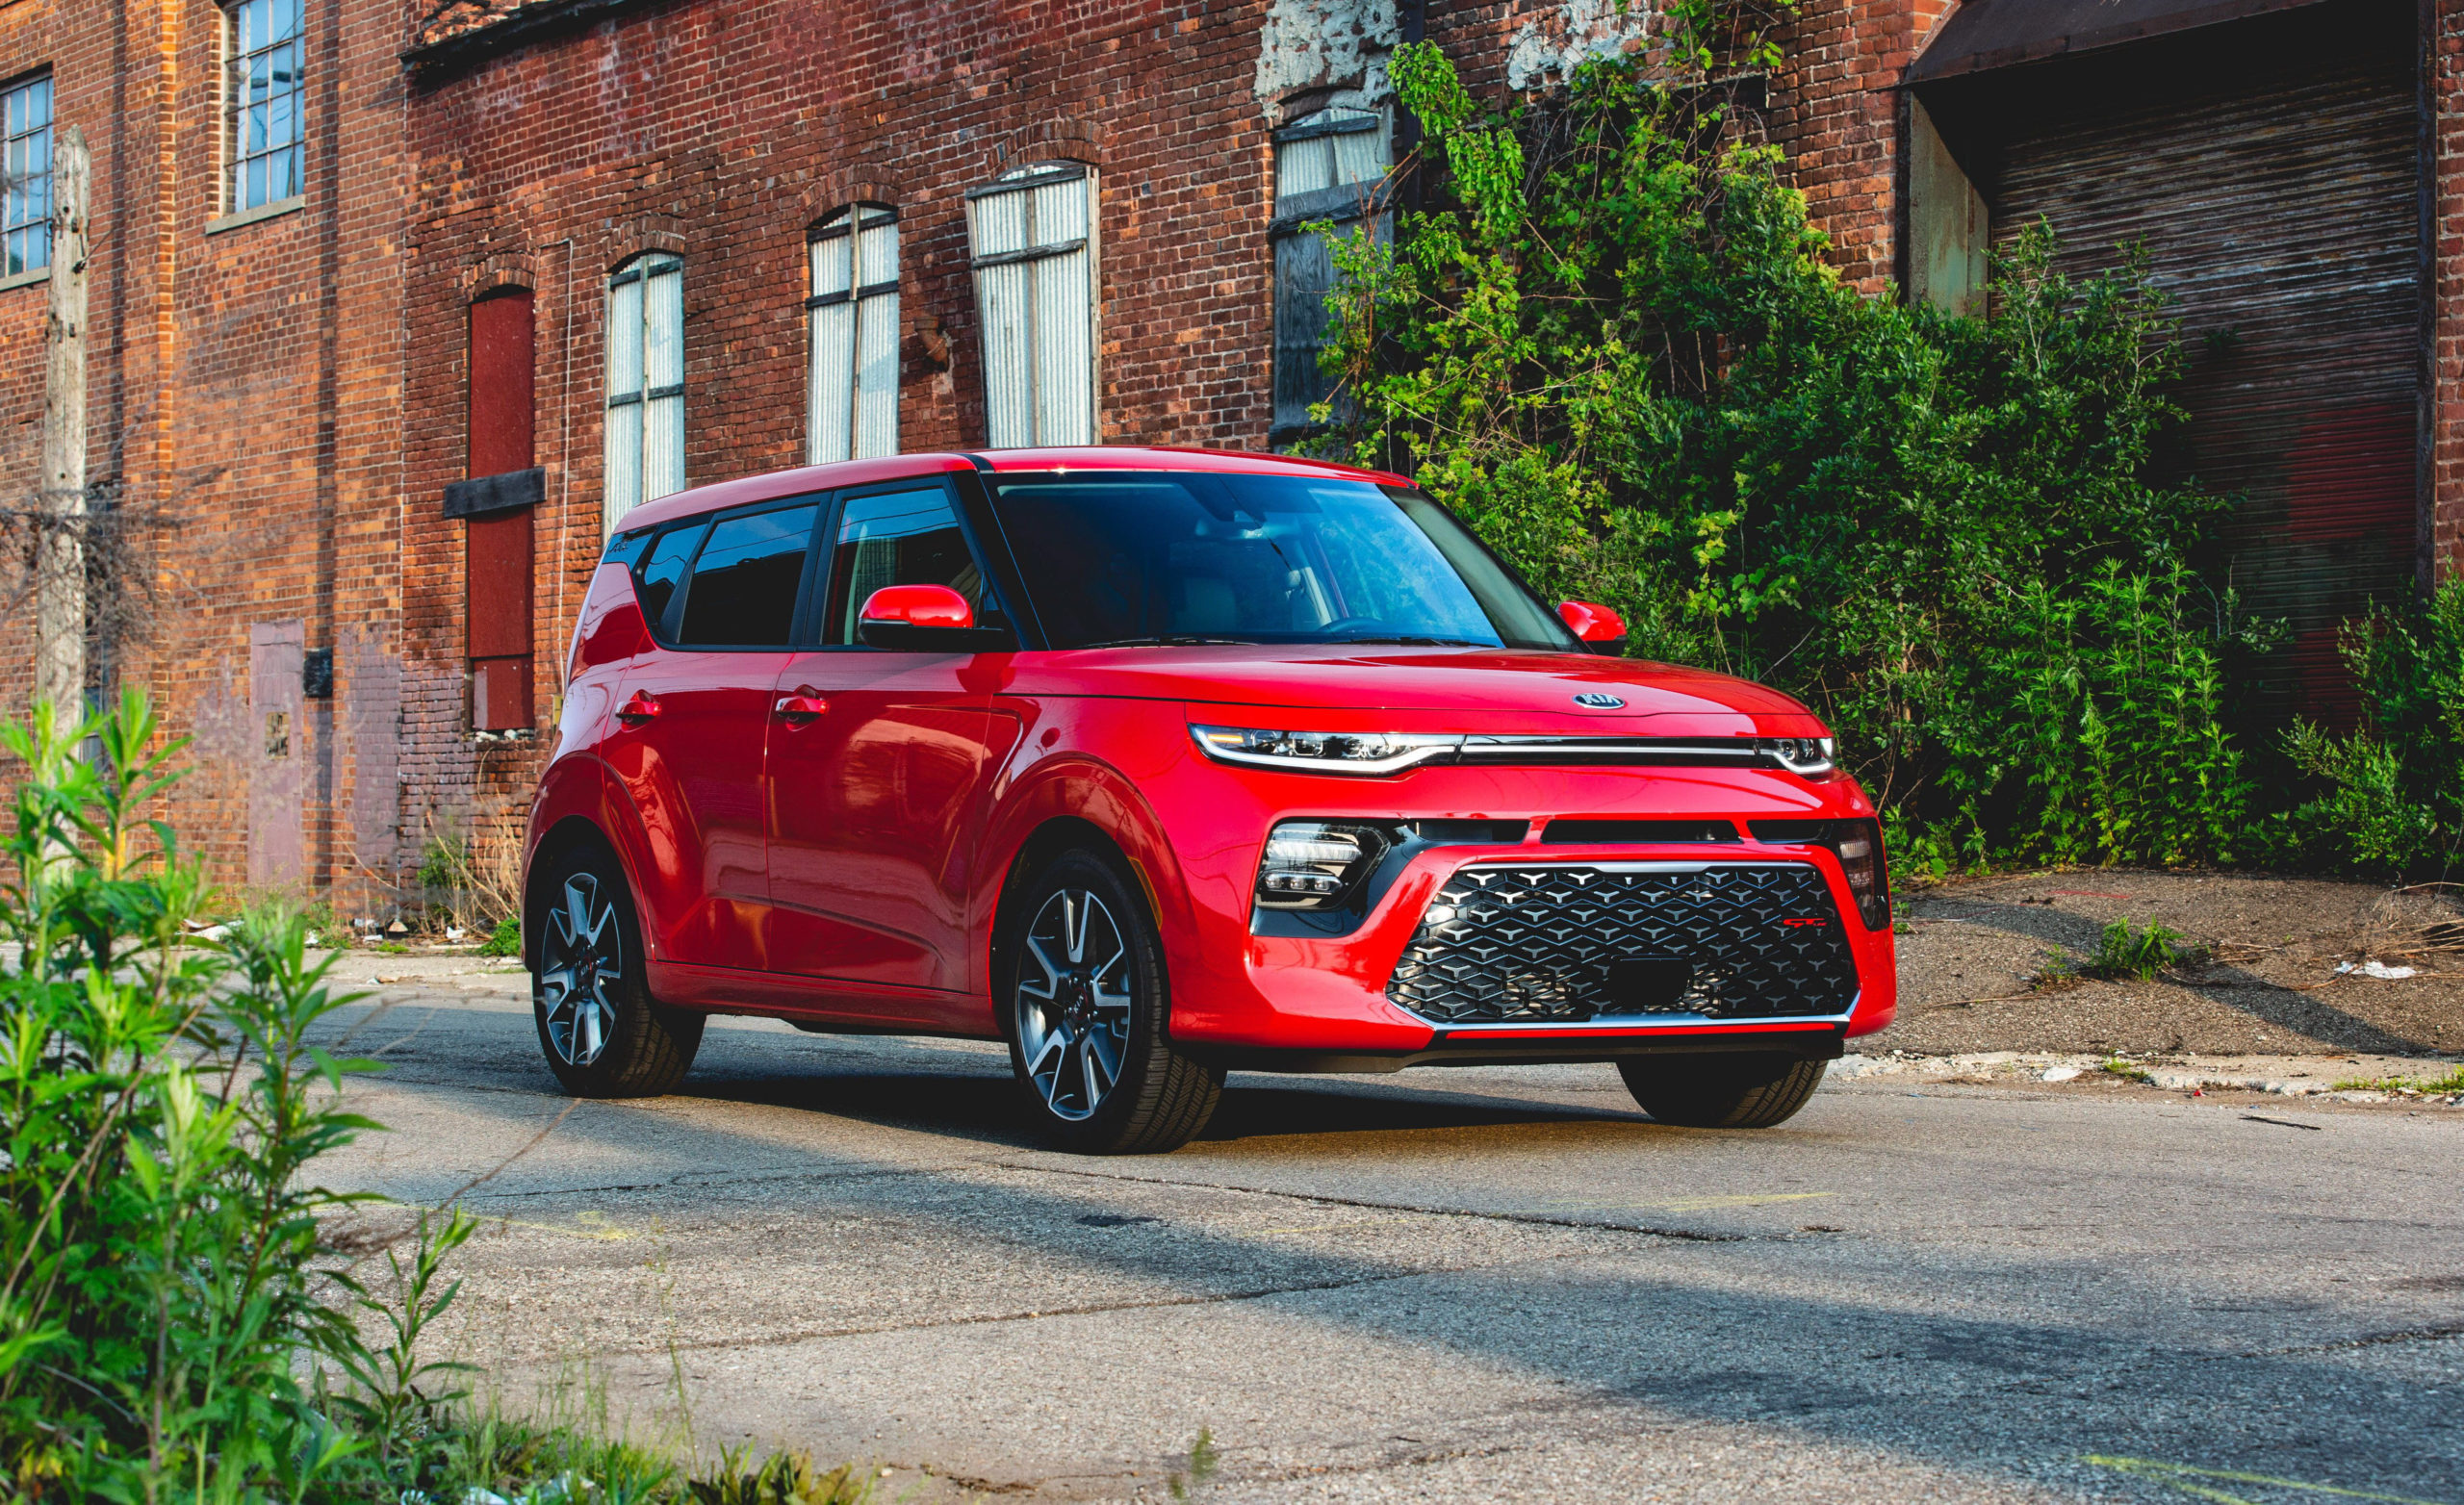 2020 Kia Soul Hits Its Marks As A Better Vehicle Overall - 2022 Kia Soul Hatchback Engine Performance, Release Date